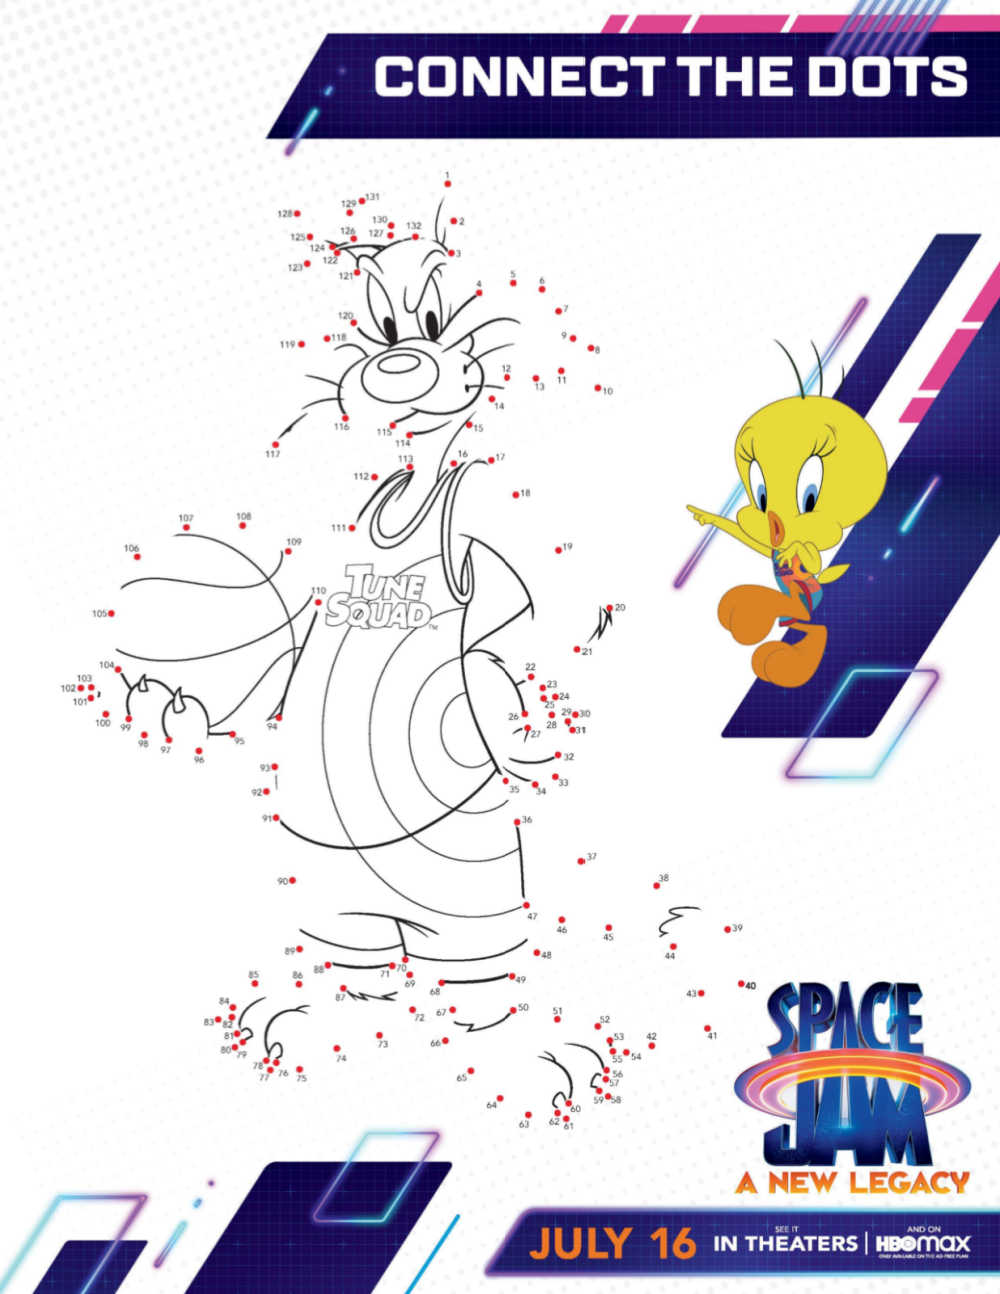 printable space jam connect the dots